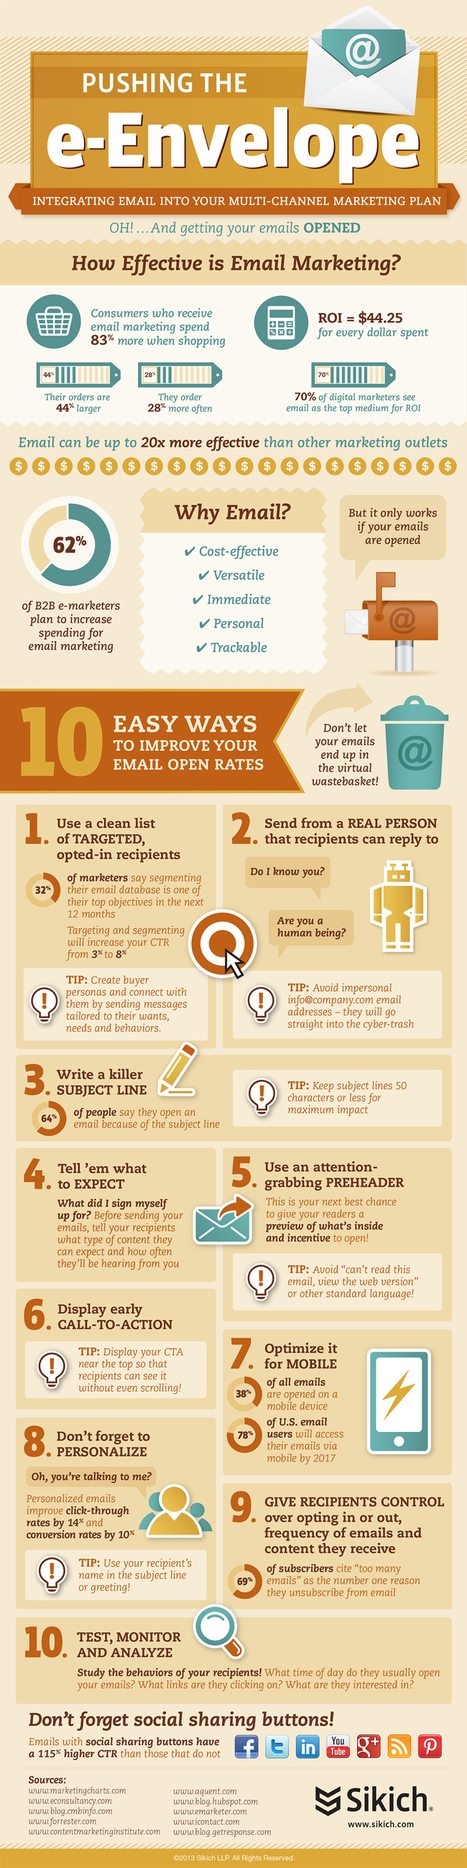 10 Ways to Optimize Your Emails for Better Engagement [Infographic] | Marketing_me | Scoop.it